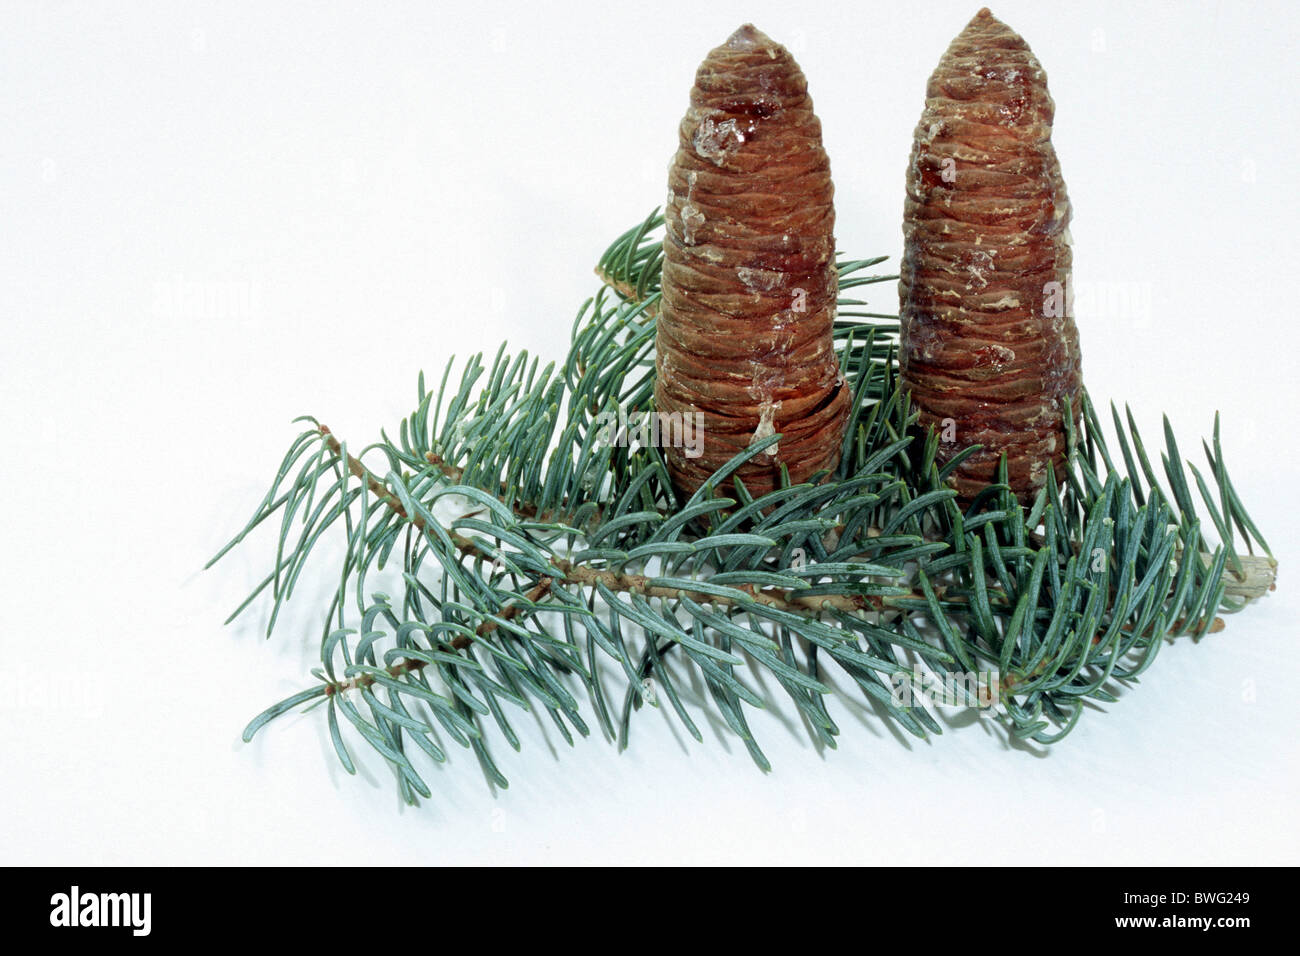 Concolor Fir Stock Photos Concolor Fir Stock Images Alamy